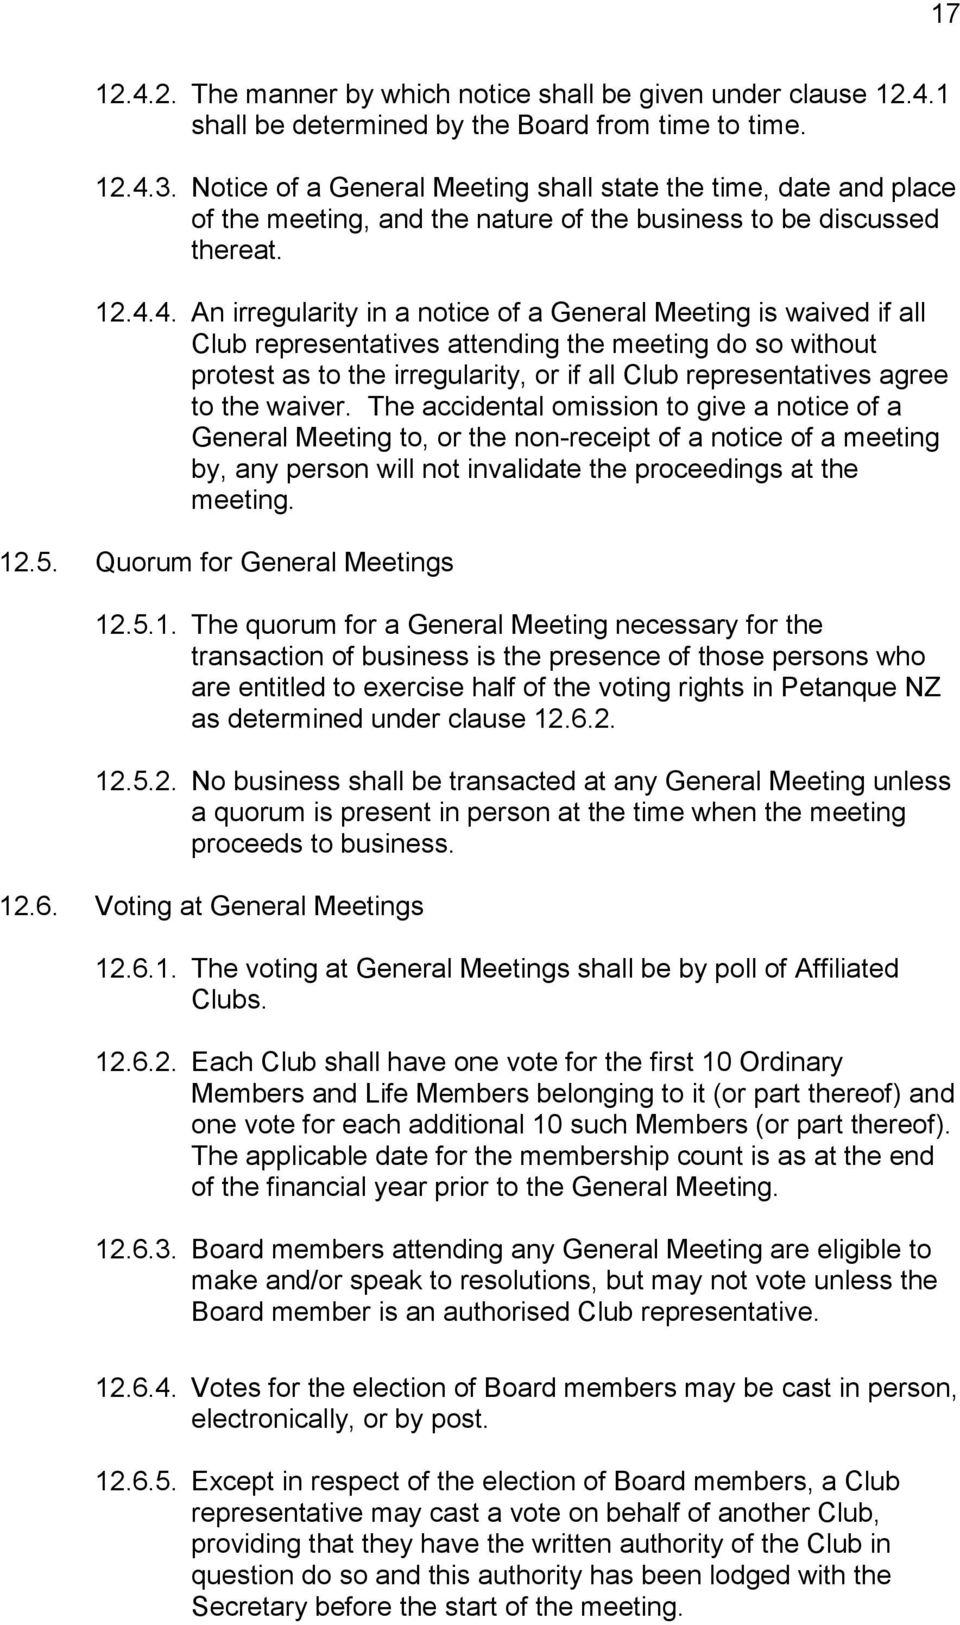 4. An irregularity in a notice of a General Meeting is waived if all Club representatives attending the meeting do so without protest as to the irregularity, or if all Club representatives agree to